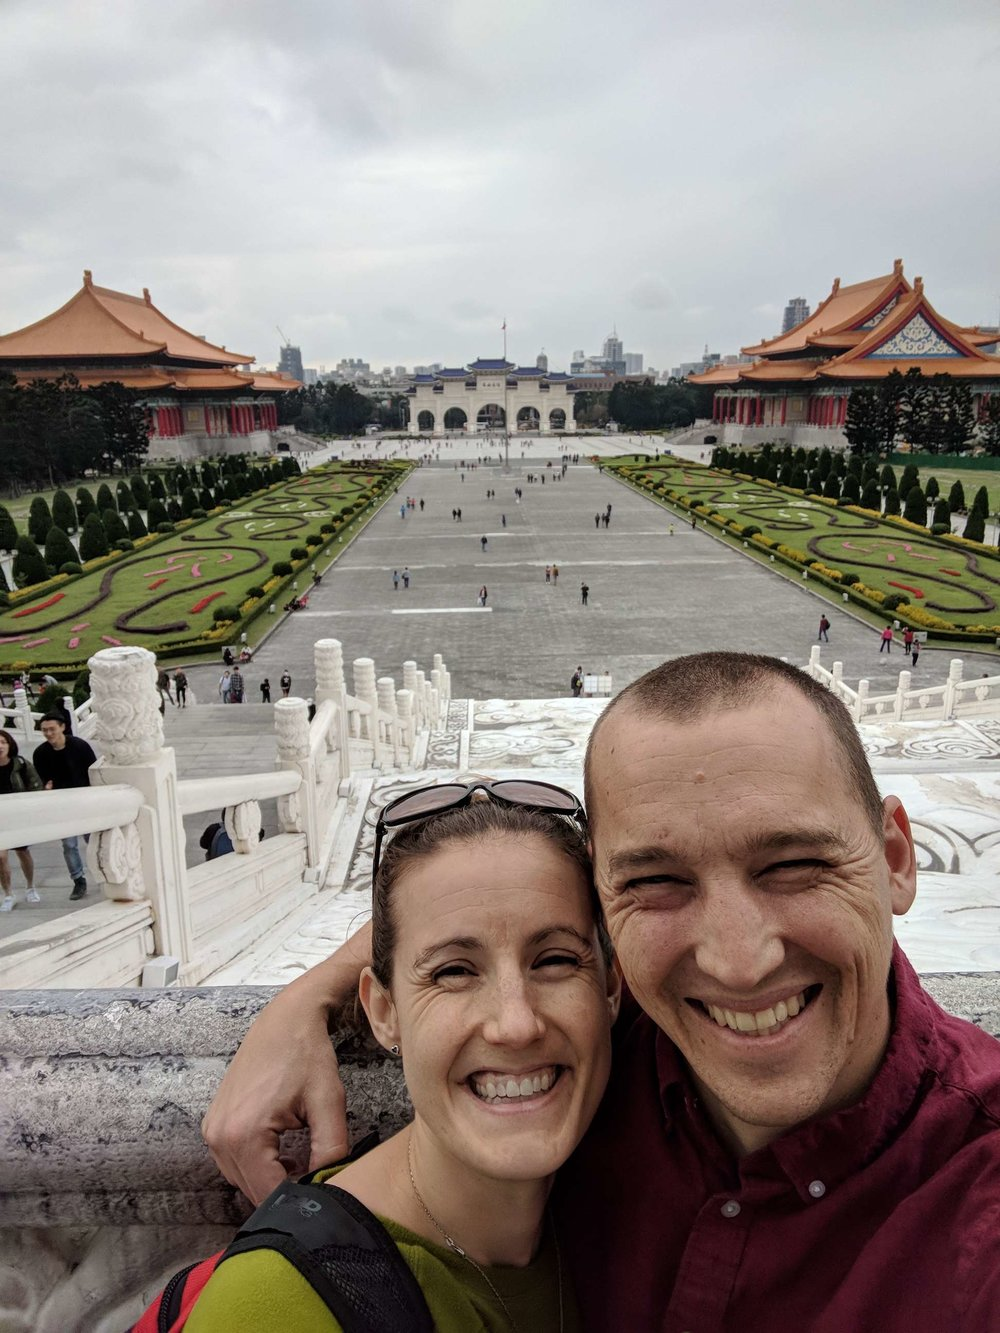 Amelia and David in Taiwan, New Year's 2018